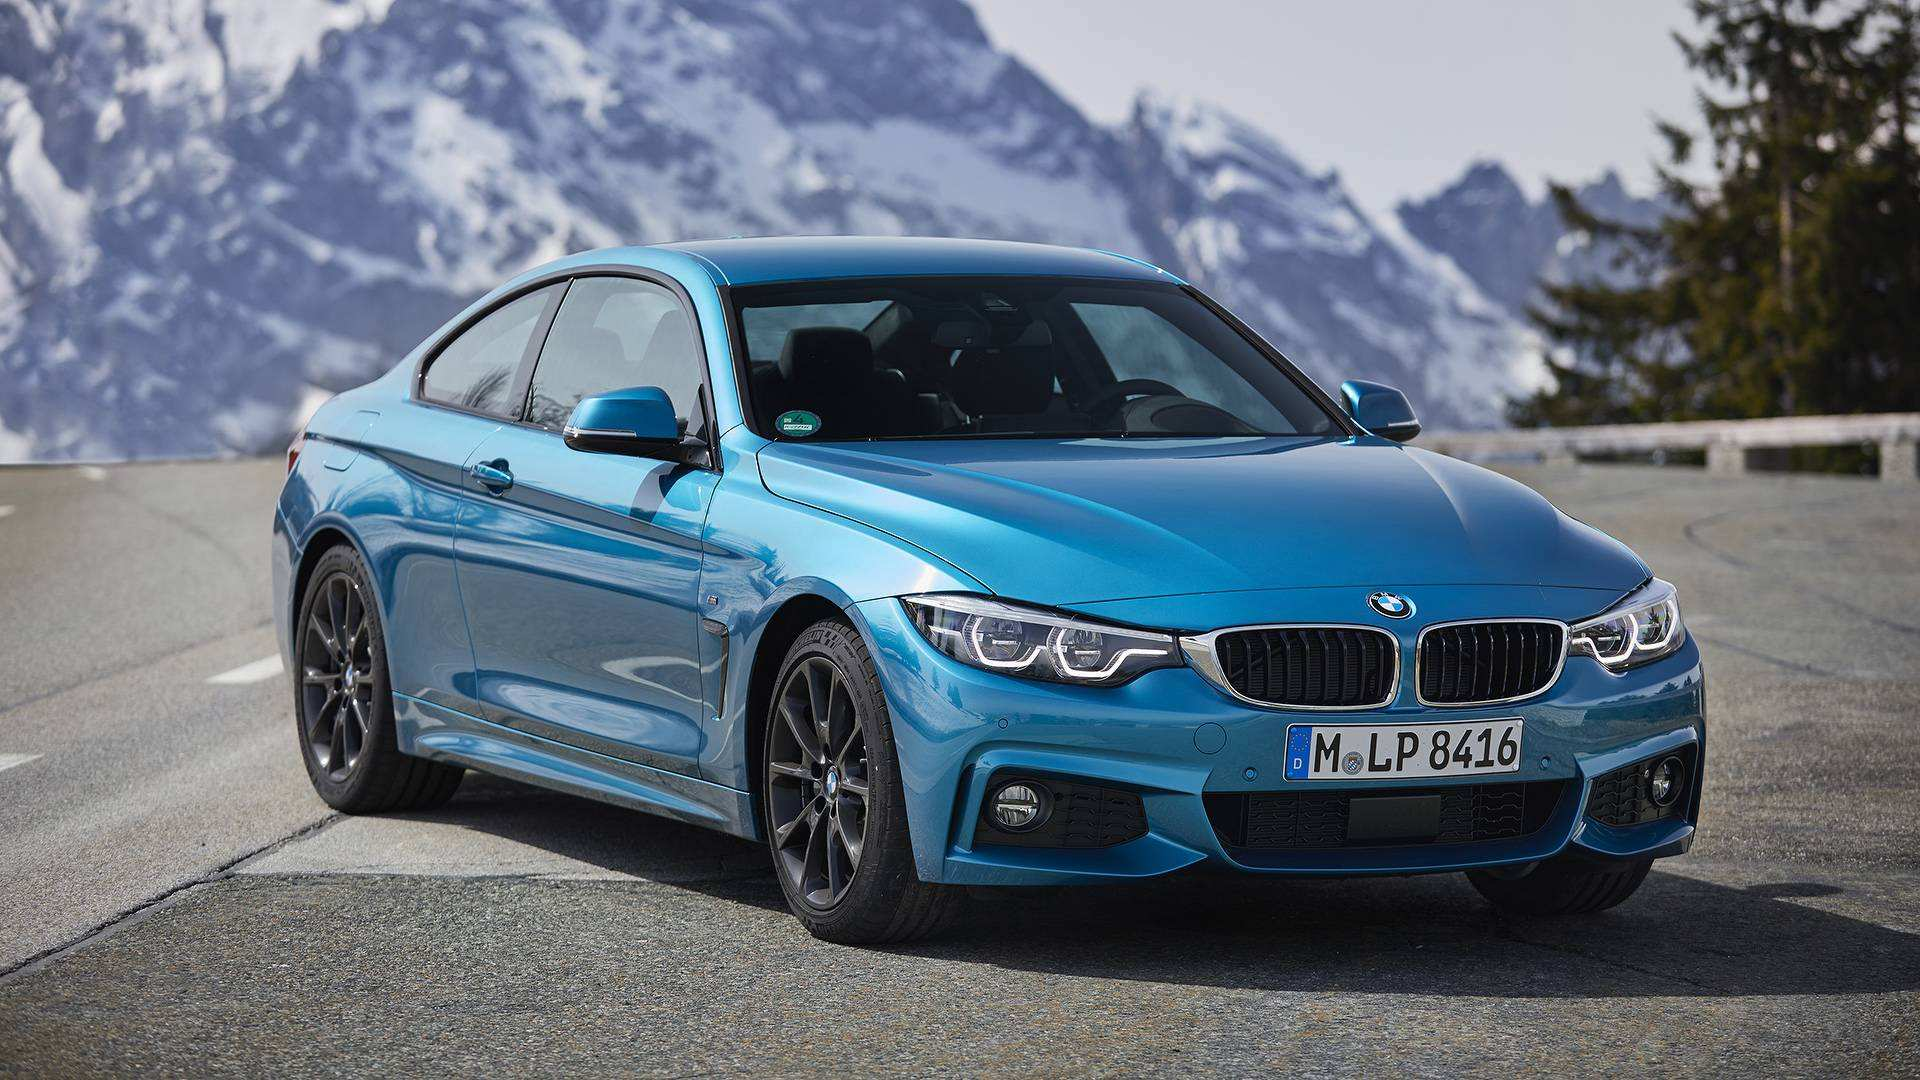 67 Great 2019 4 Series Bmw Wallpaper by 2019 4 Series Bmw